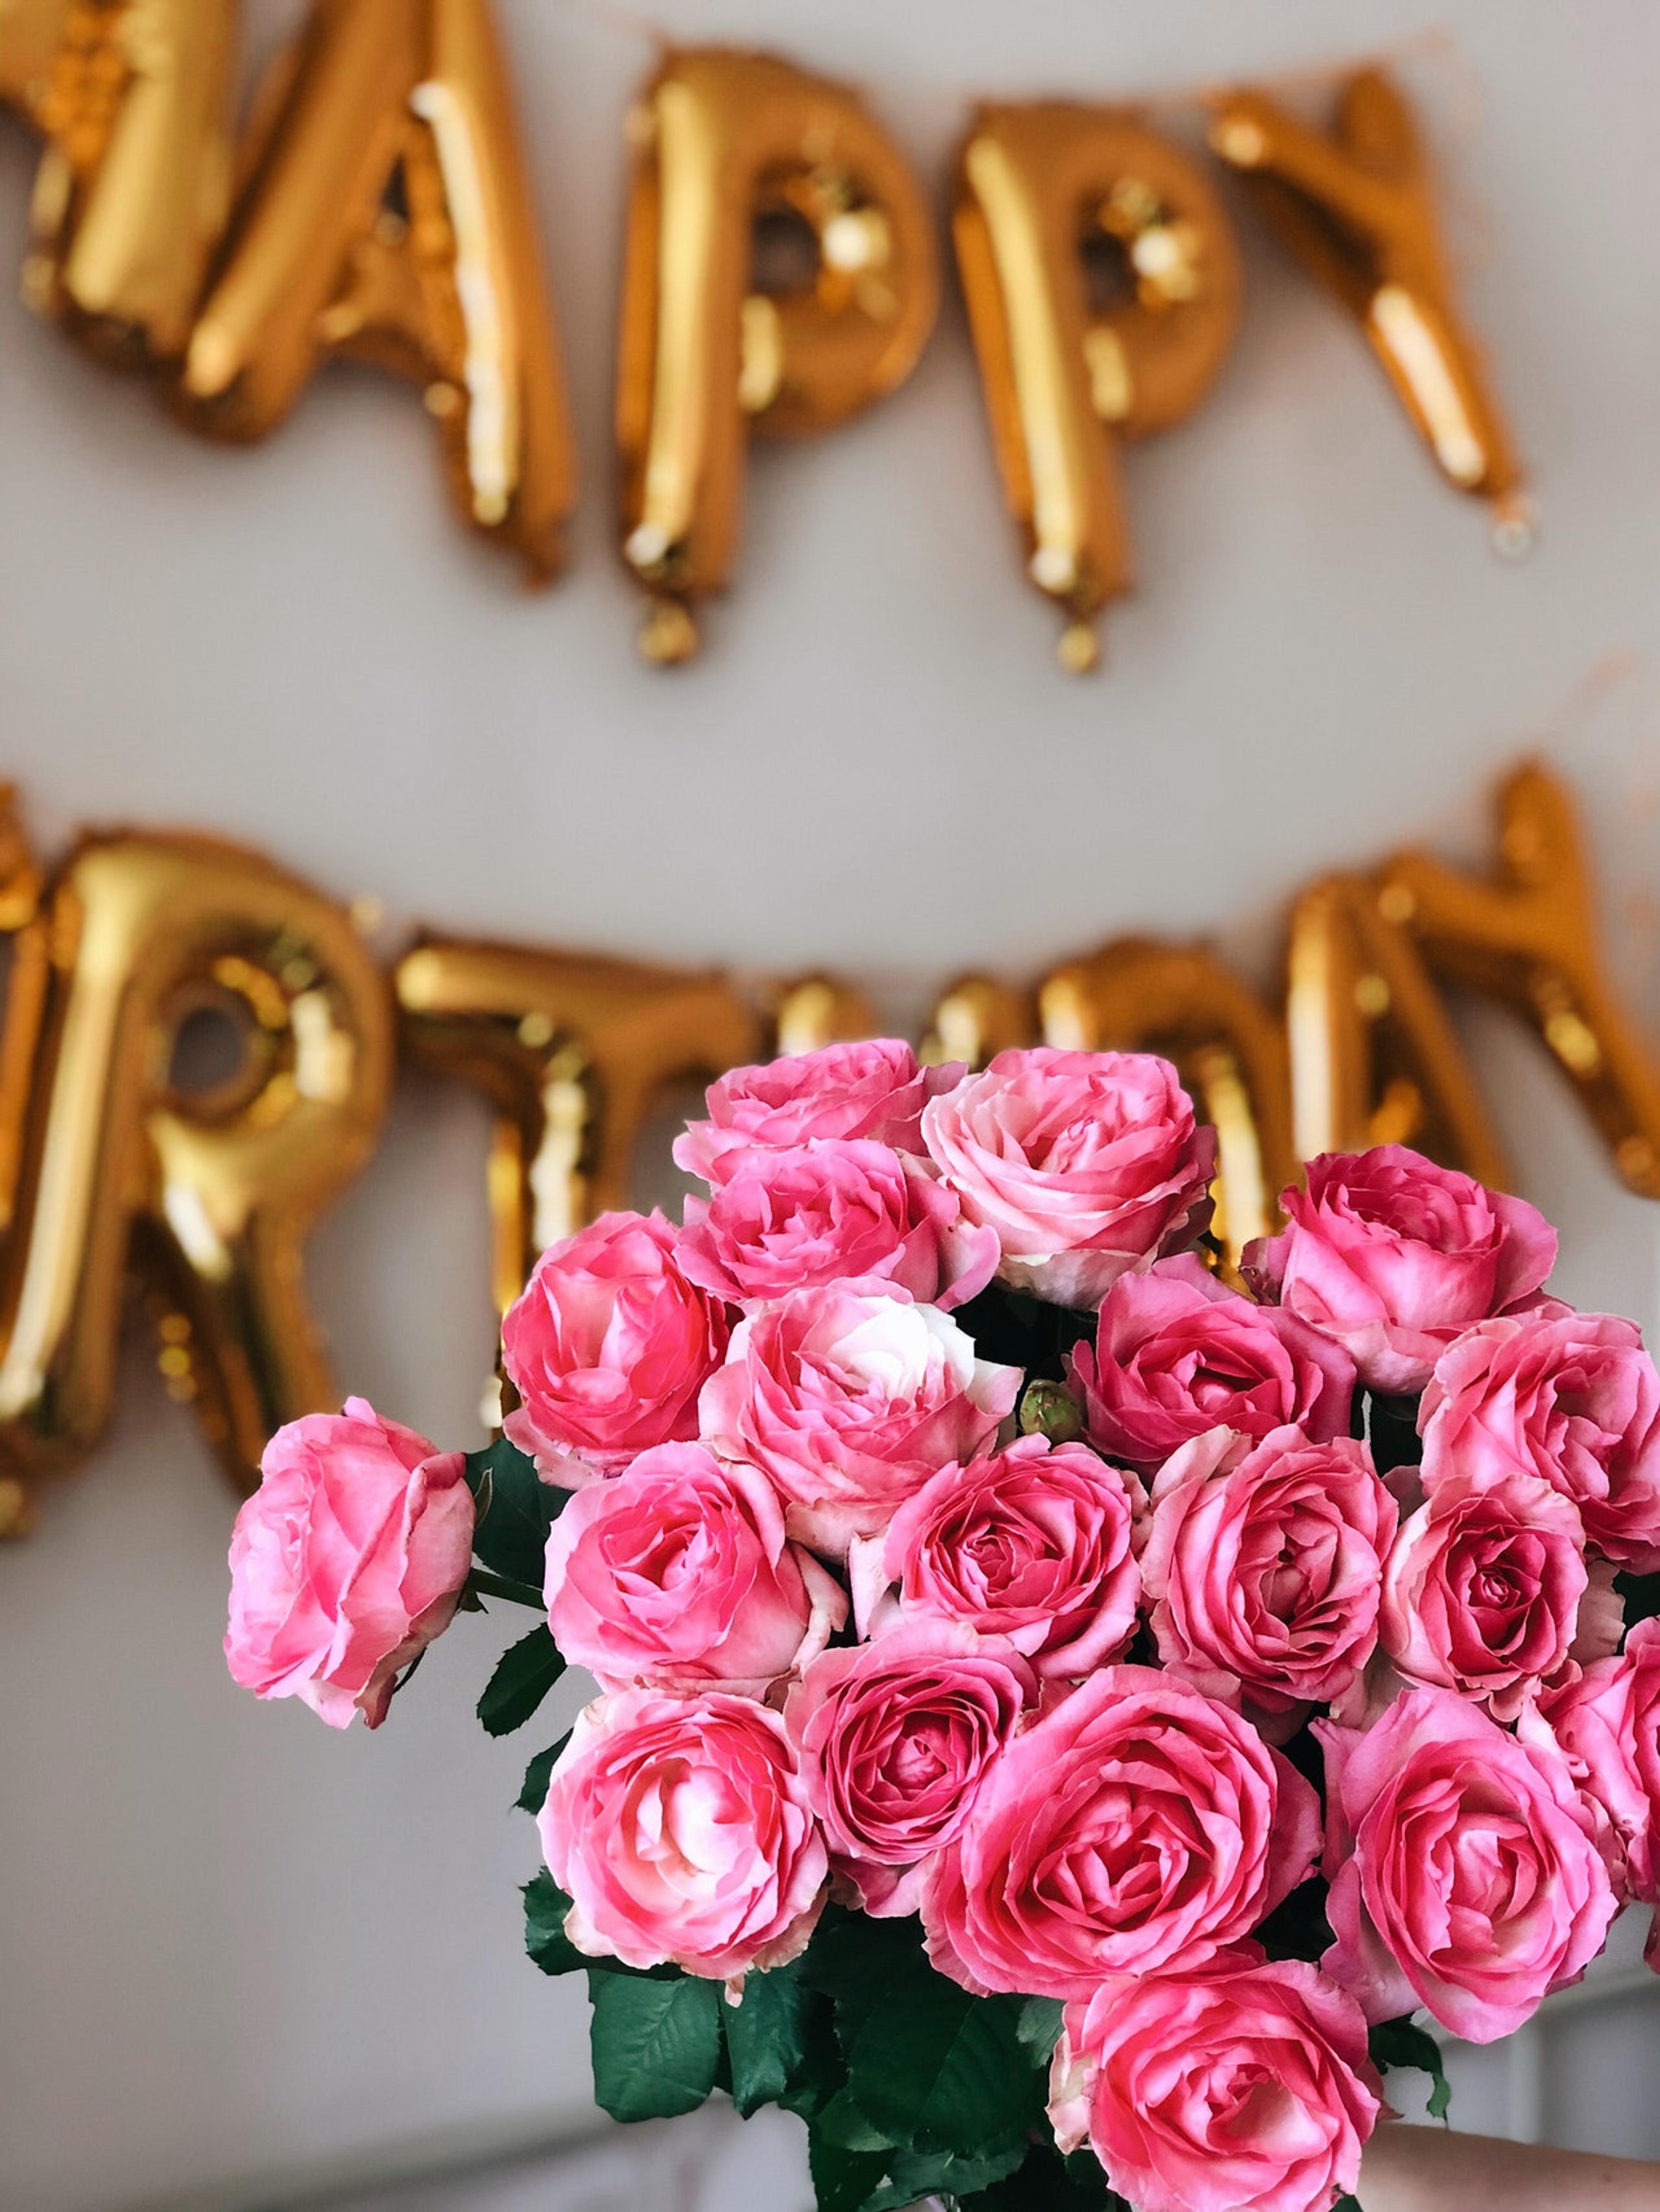 Flowers and Happy Birthday balloons